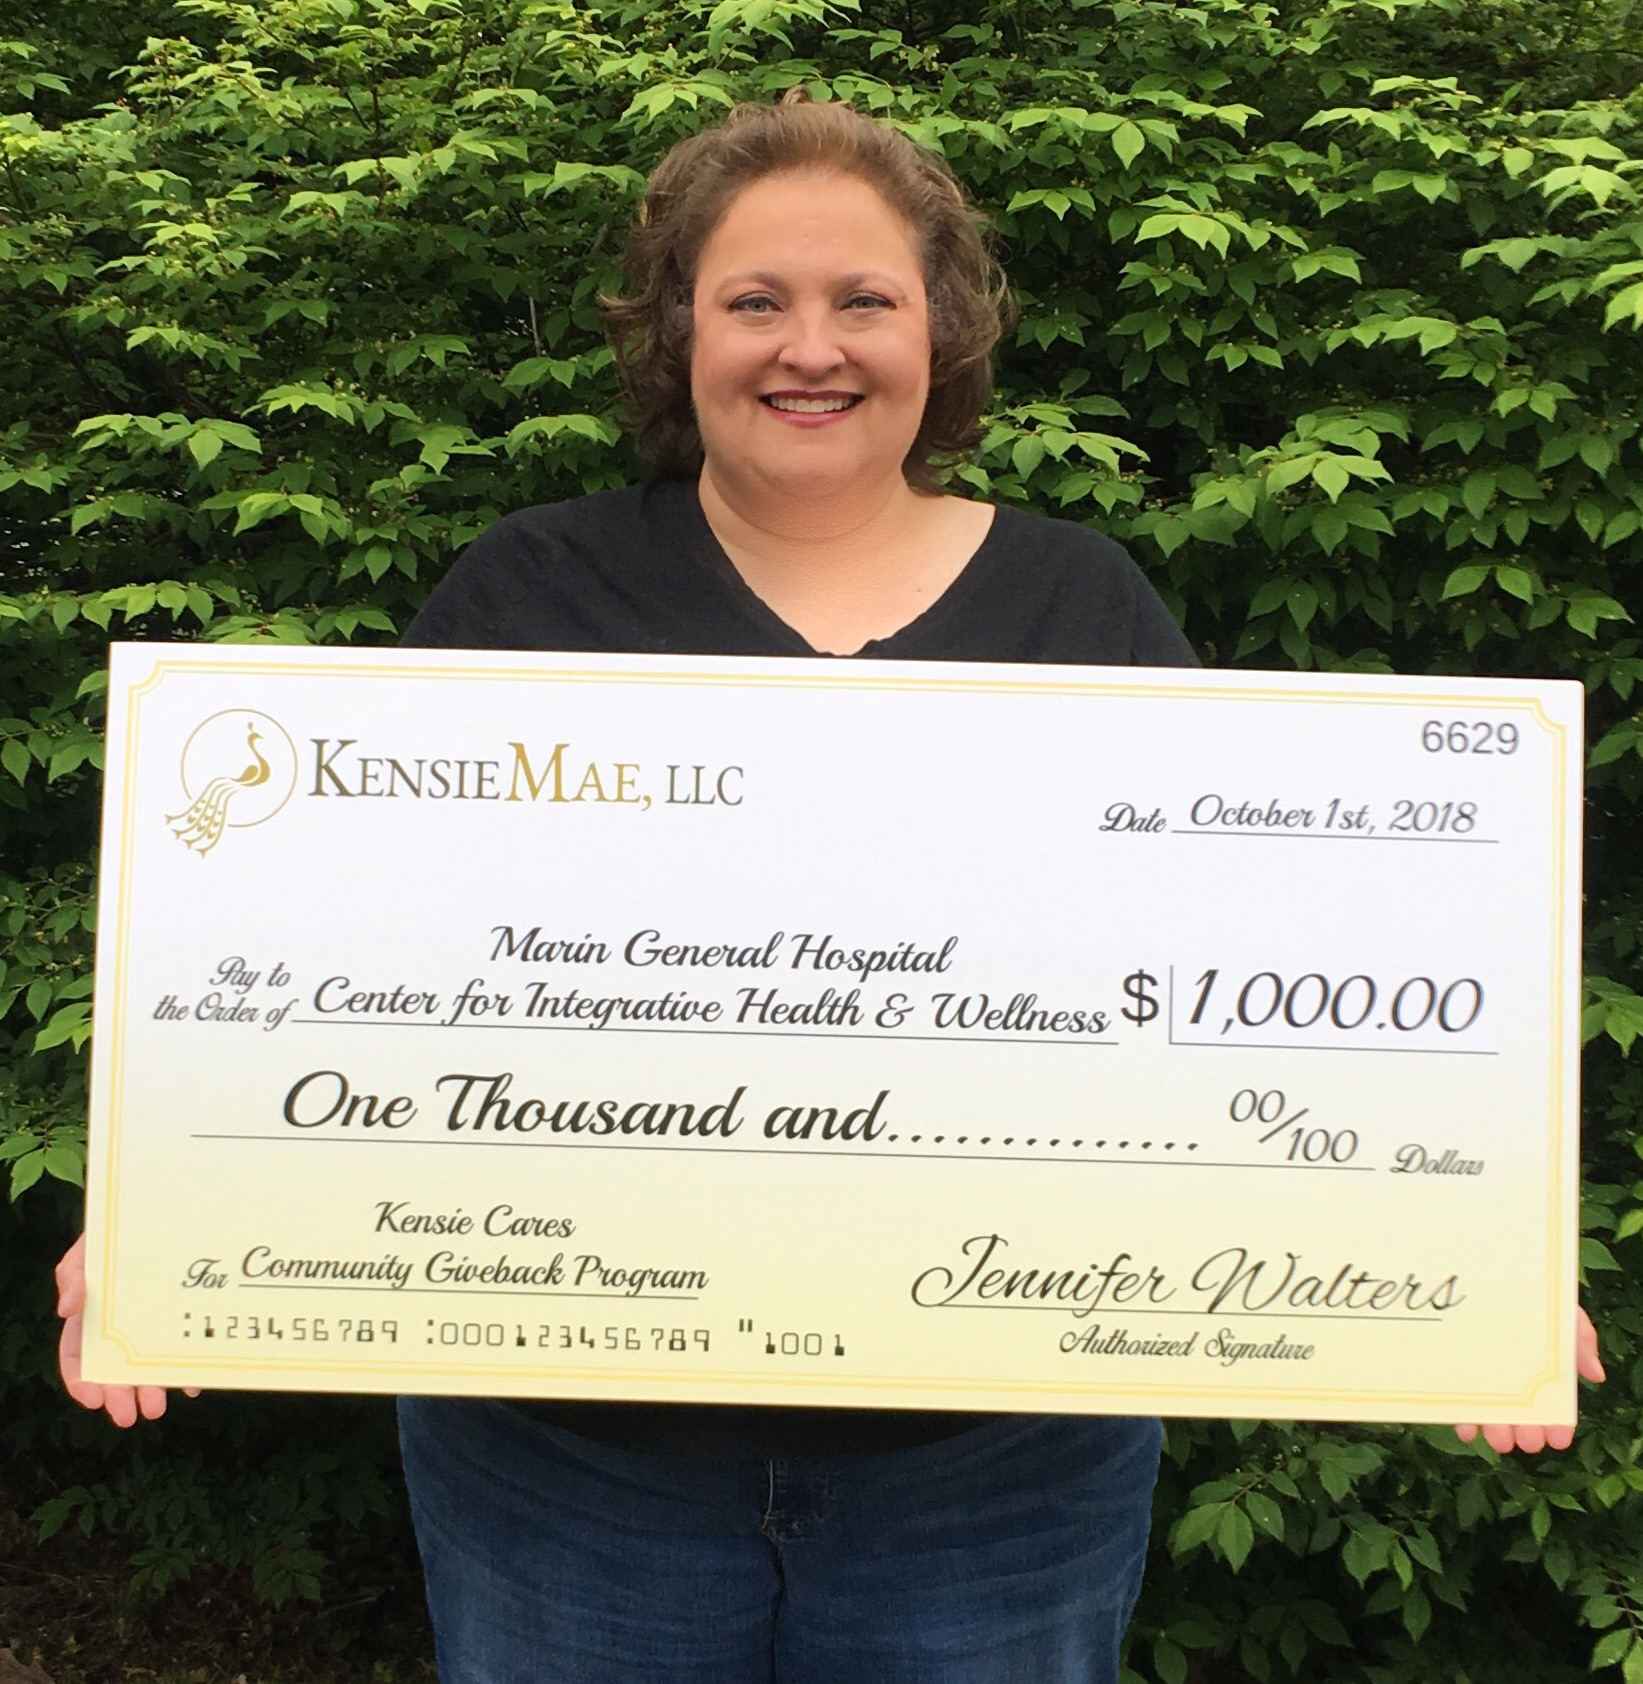 Kensie Cares recipient, Jennifer Walters, proudly presenting her donation to the CIHW at Marin General Hospital.